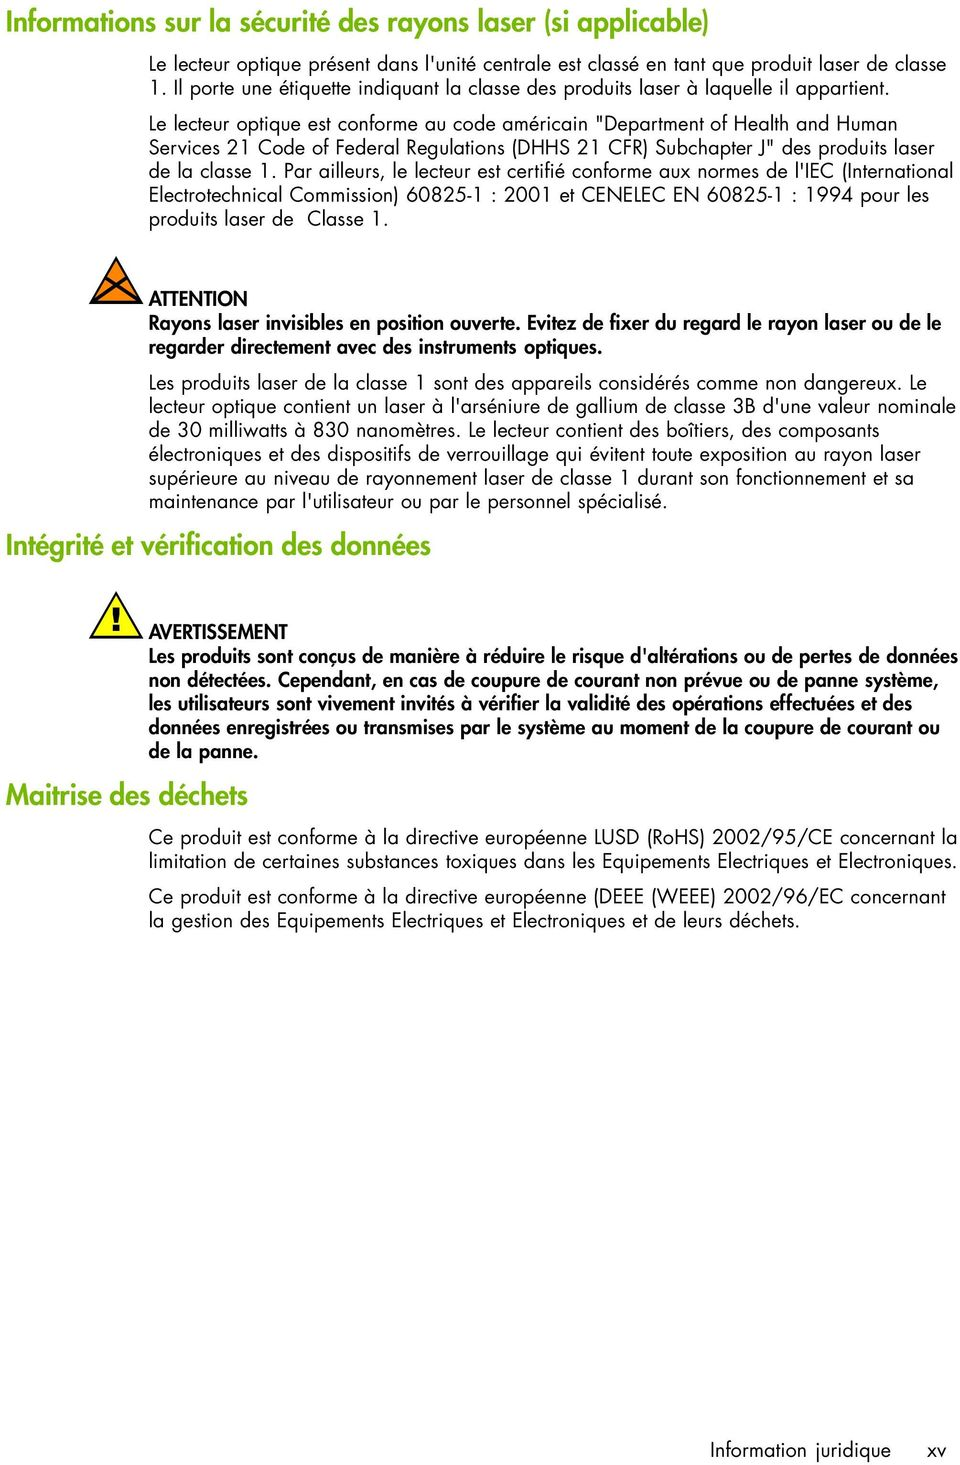 "Le lecteur optique est conforme au code américain ""Department of Health and Human Services 21 Code of Federal Regulations (DHHS 21 CFR) Subchapter J"" des produits laser de la classe 1."